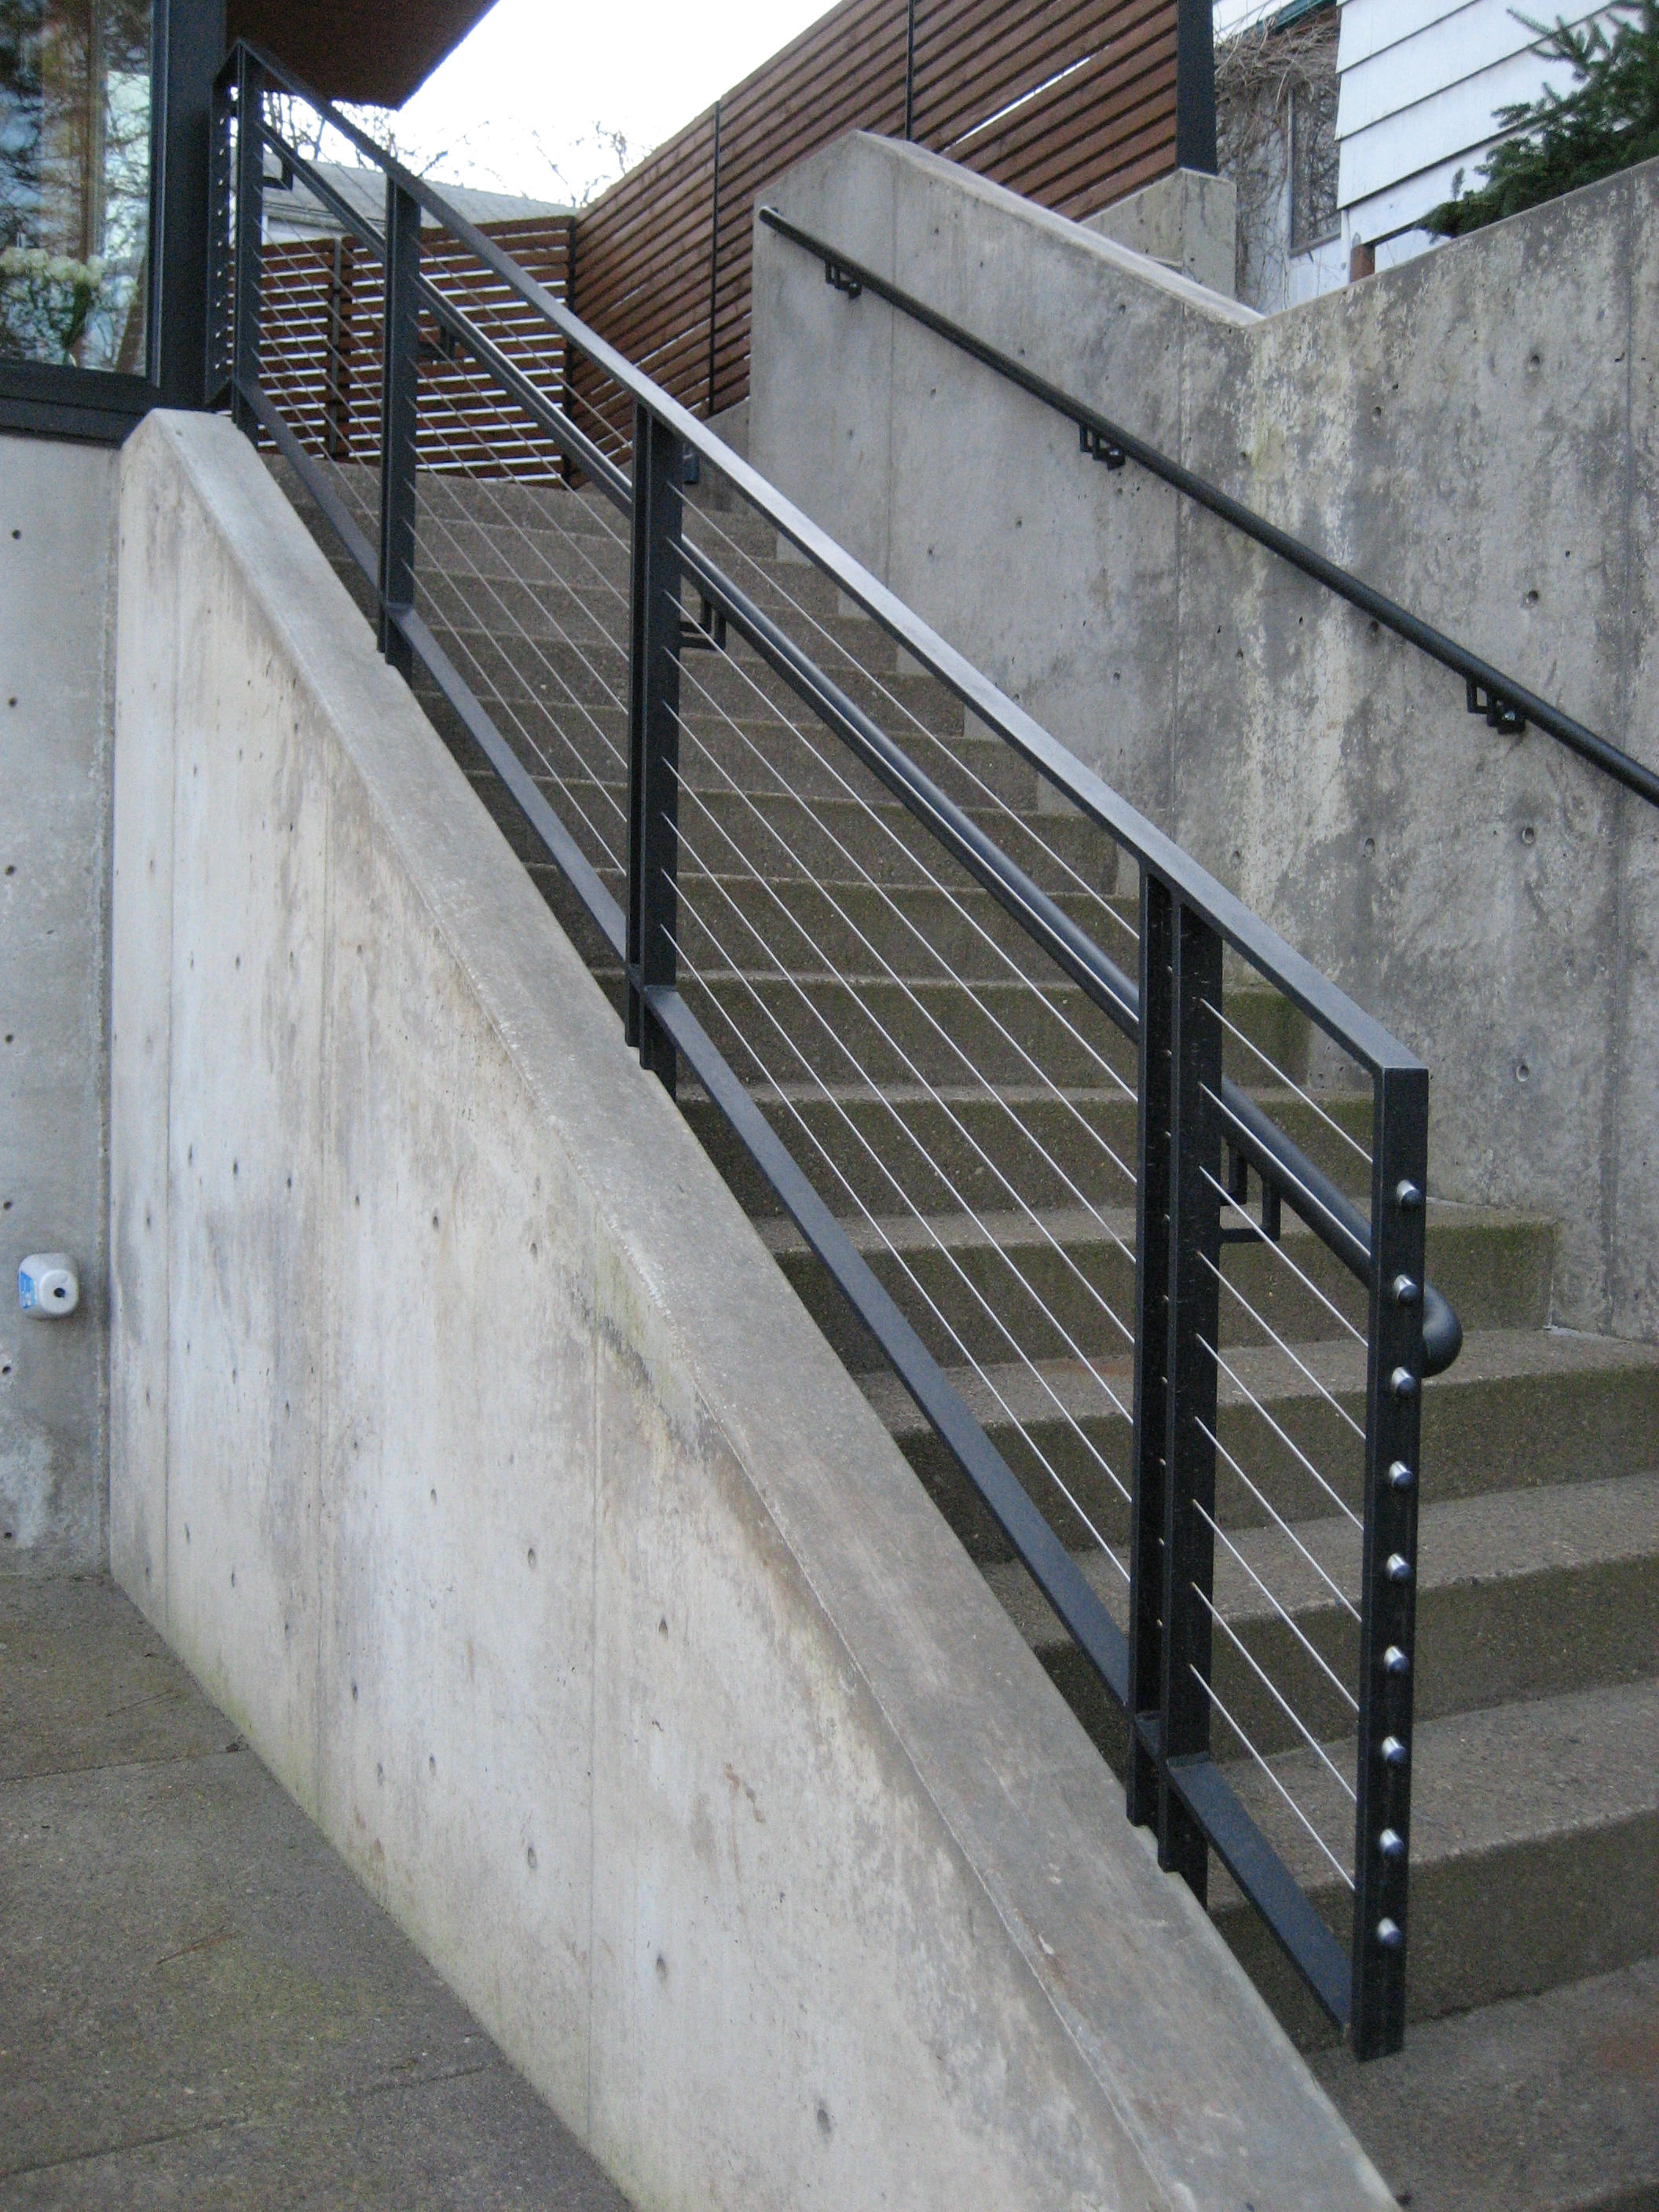 Detail of Handrail with Stainless Steel Cable